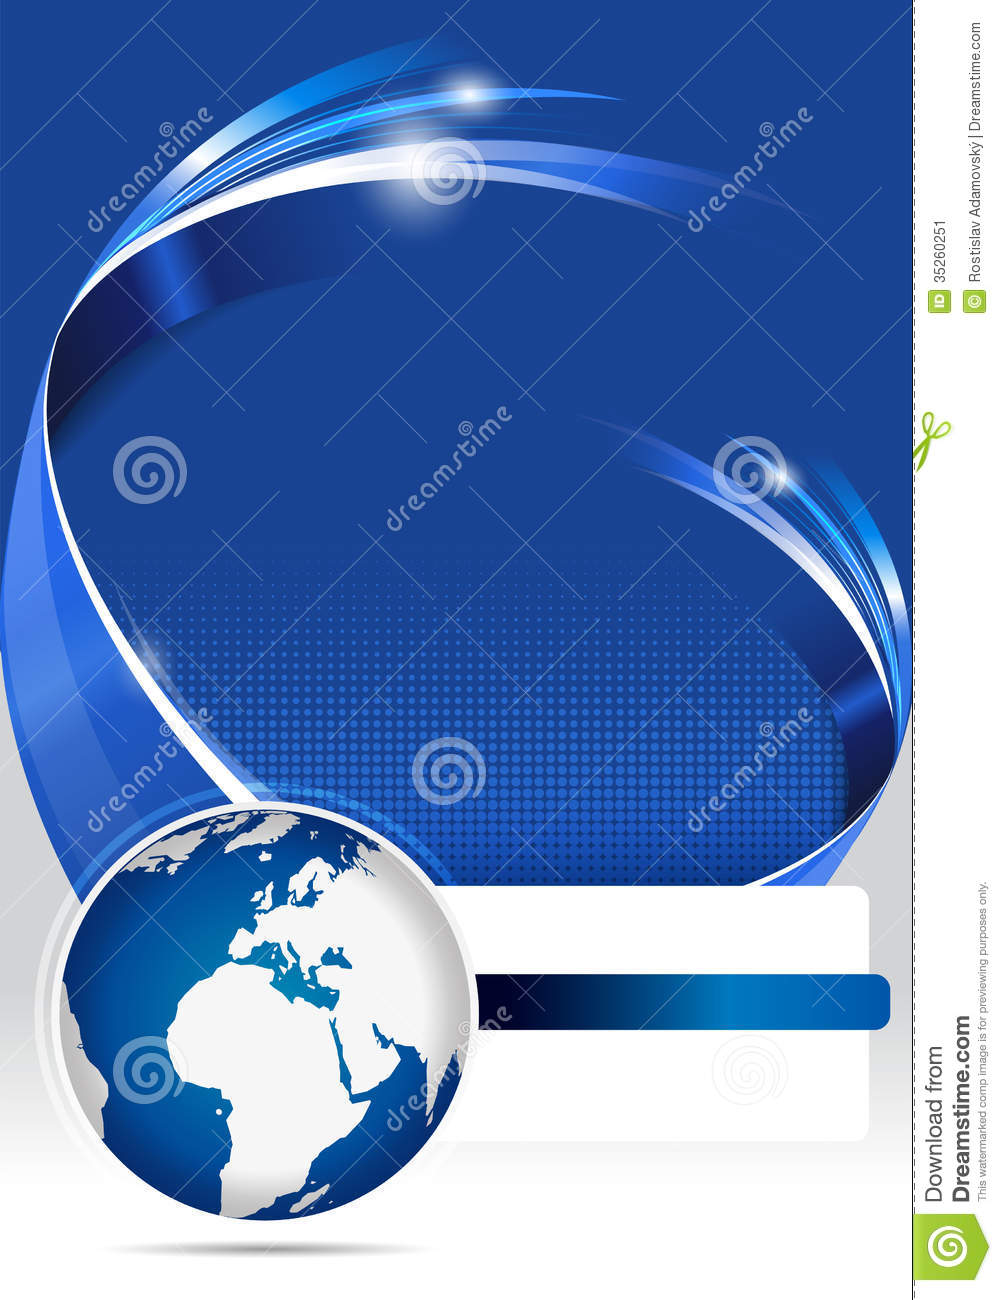 abstract blue background of brochure for company stock